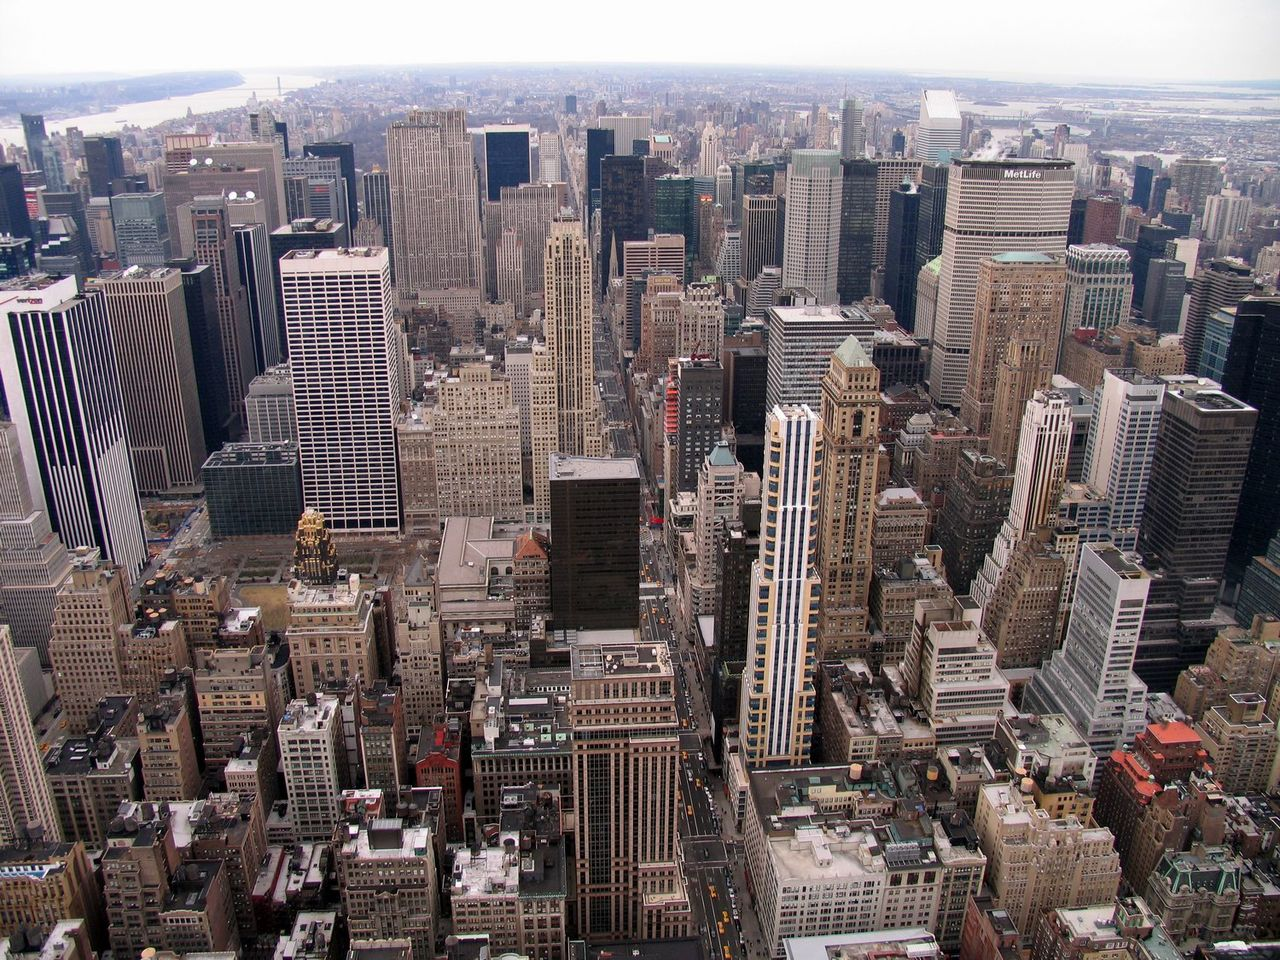 Research institutions in New York are good opportunities to market lab supplies to researchers.